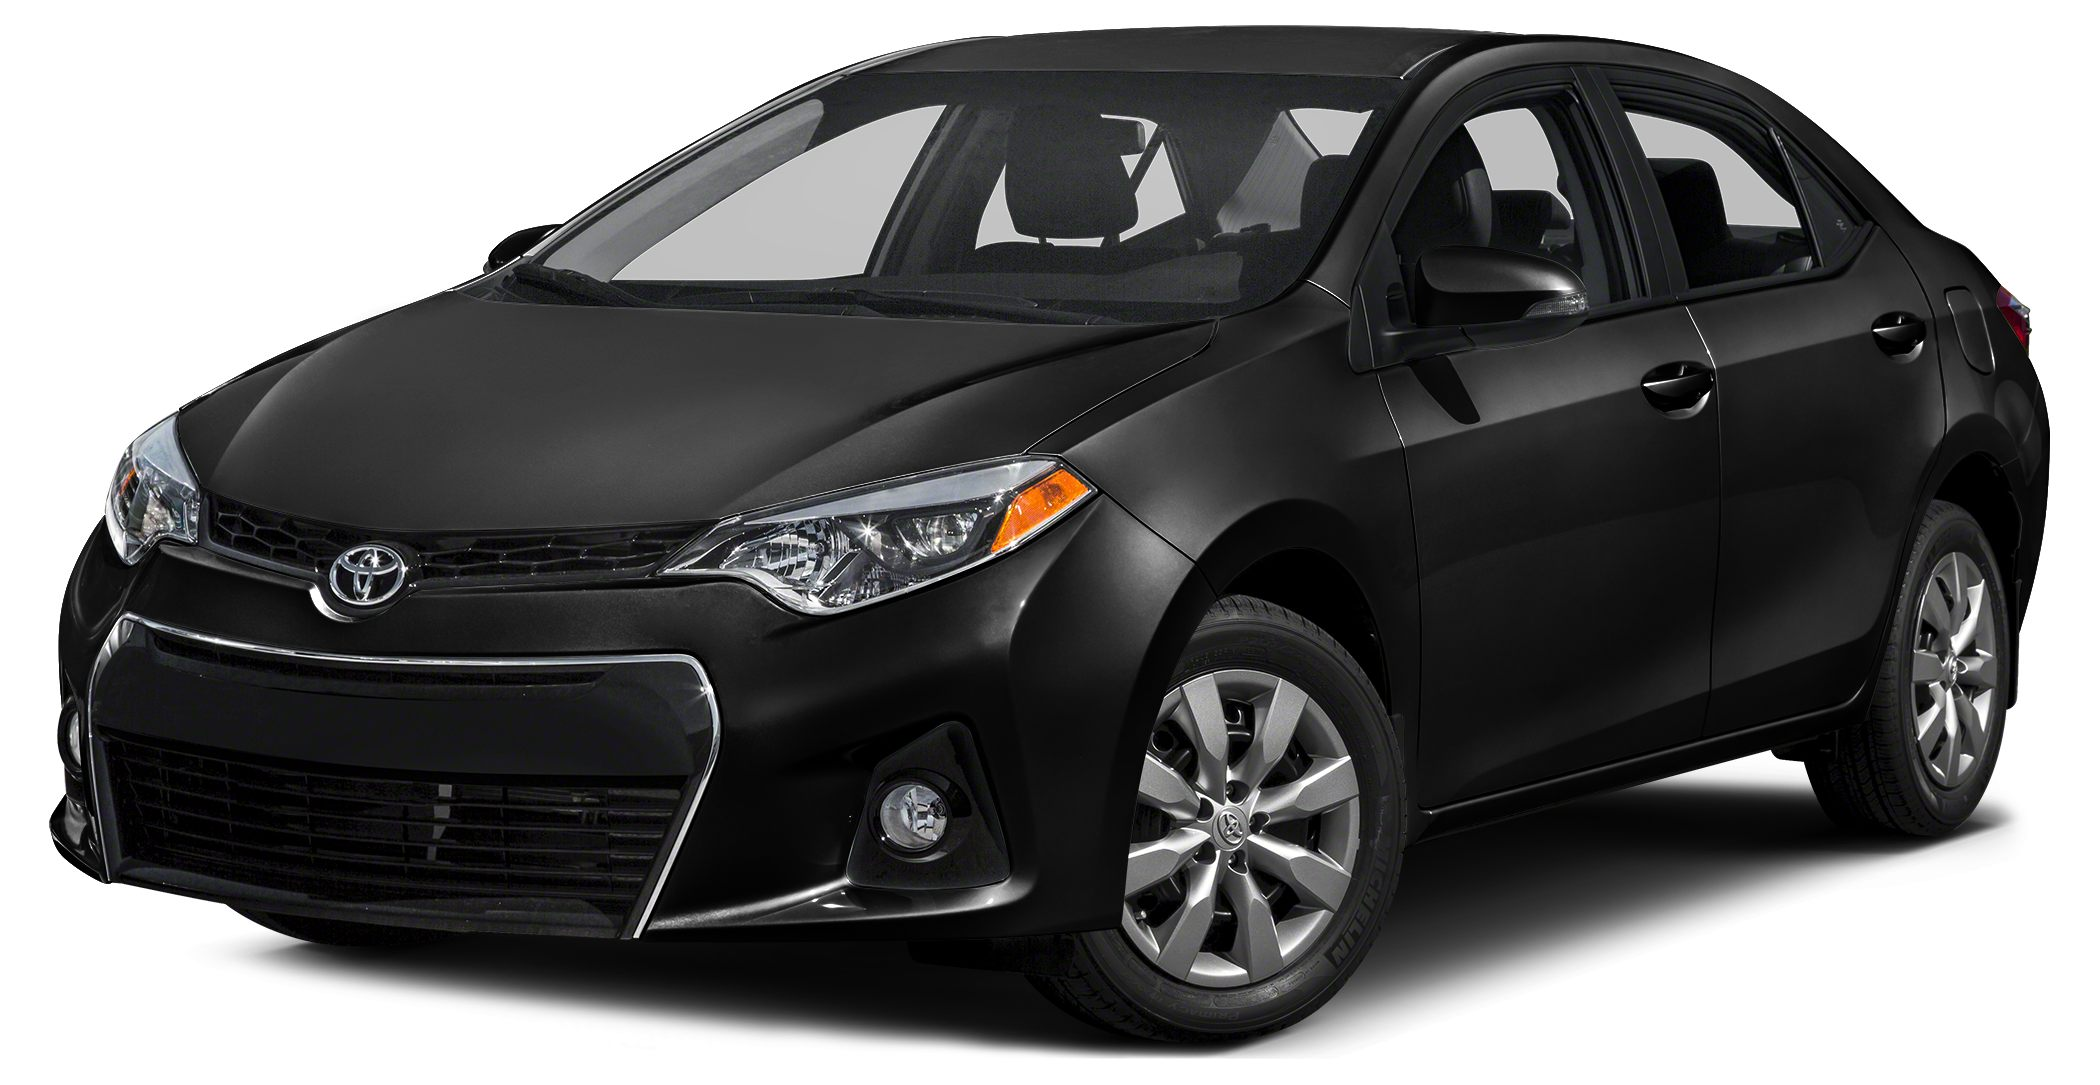 2016 Toyota Corolla S Plus CARFAX 1-Owner BLACK SAND PEARL exterior and BLACK interior S Plus tr